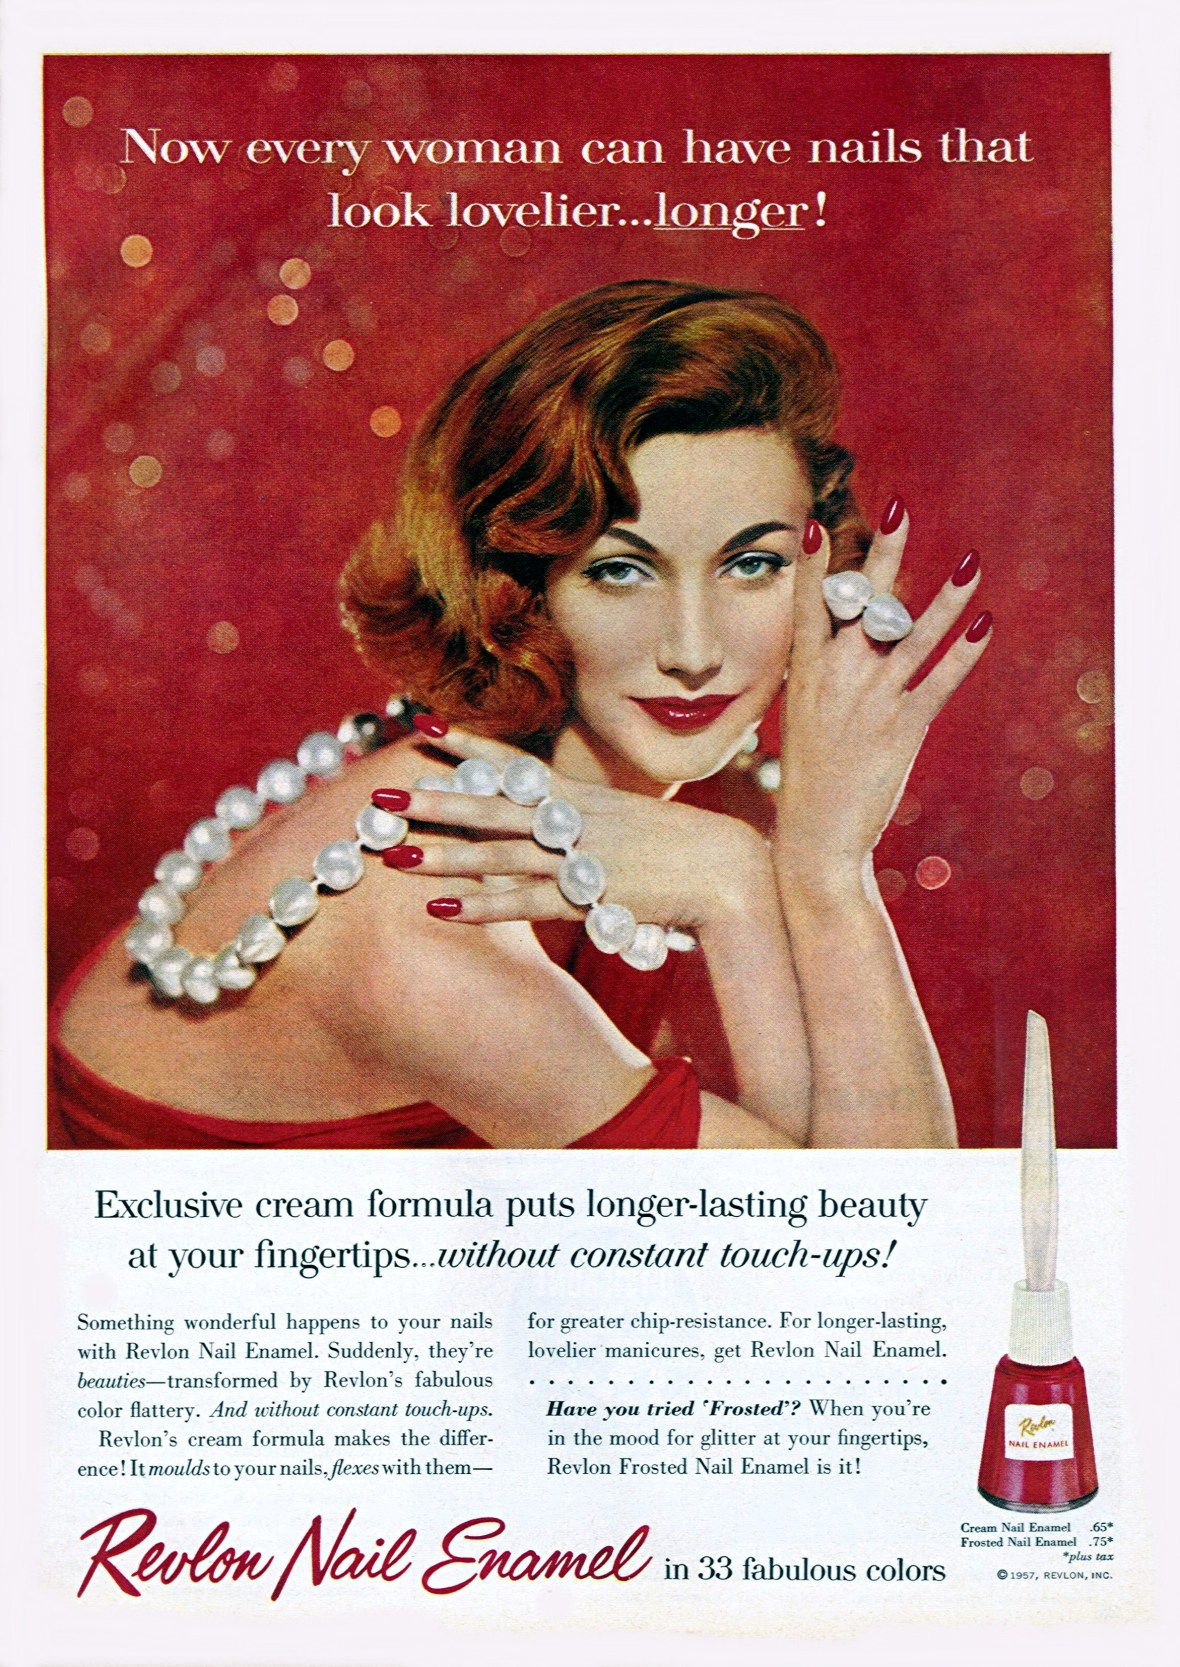 Revlon Nail Enamel - published in Good Housekeeping - May 1957